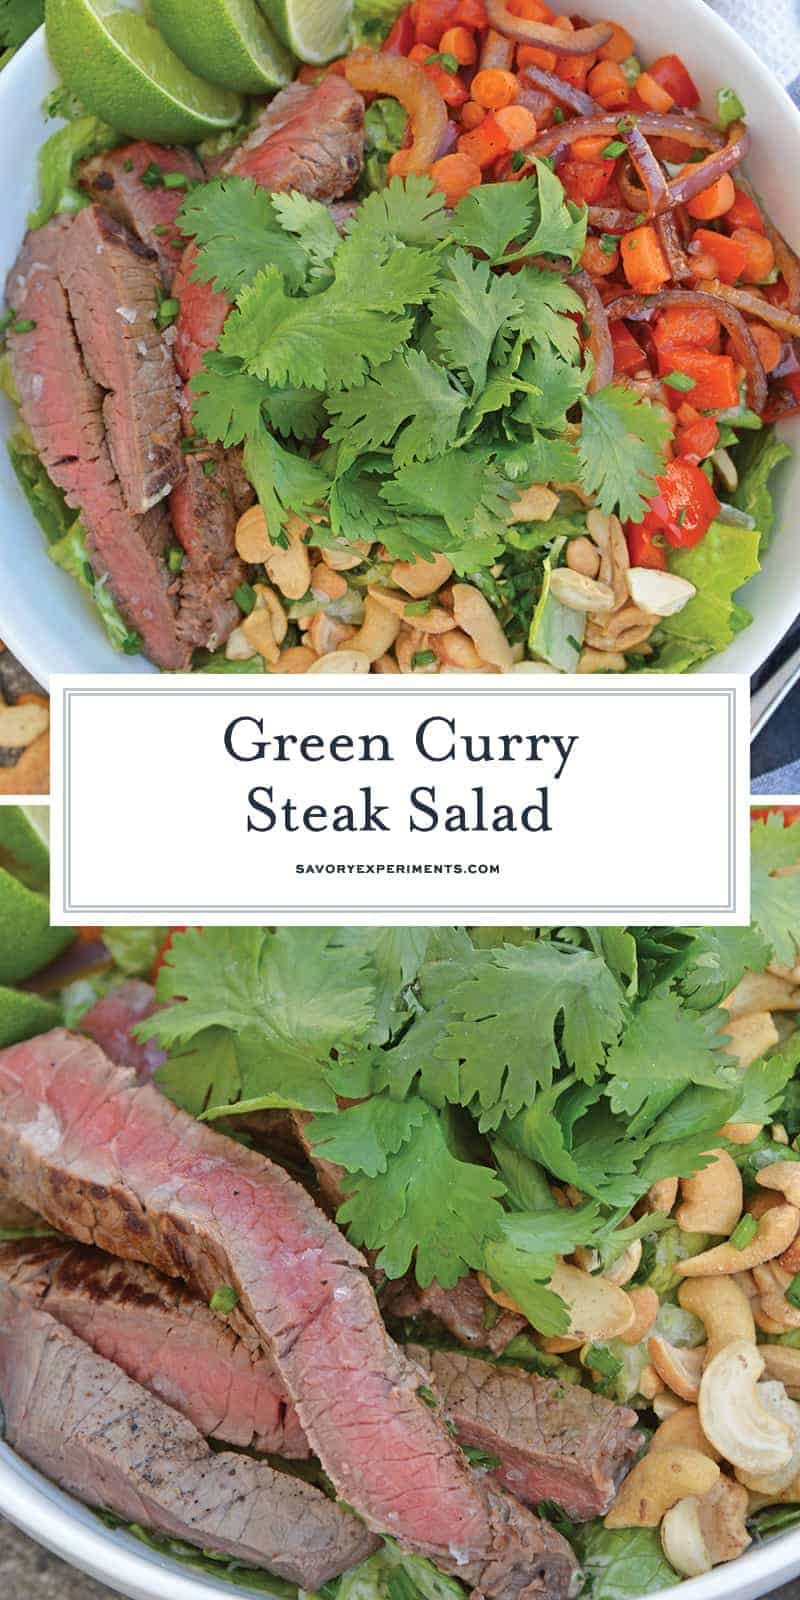 Green Curry Steak Salad for Pinterst